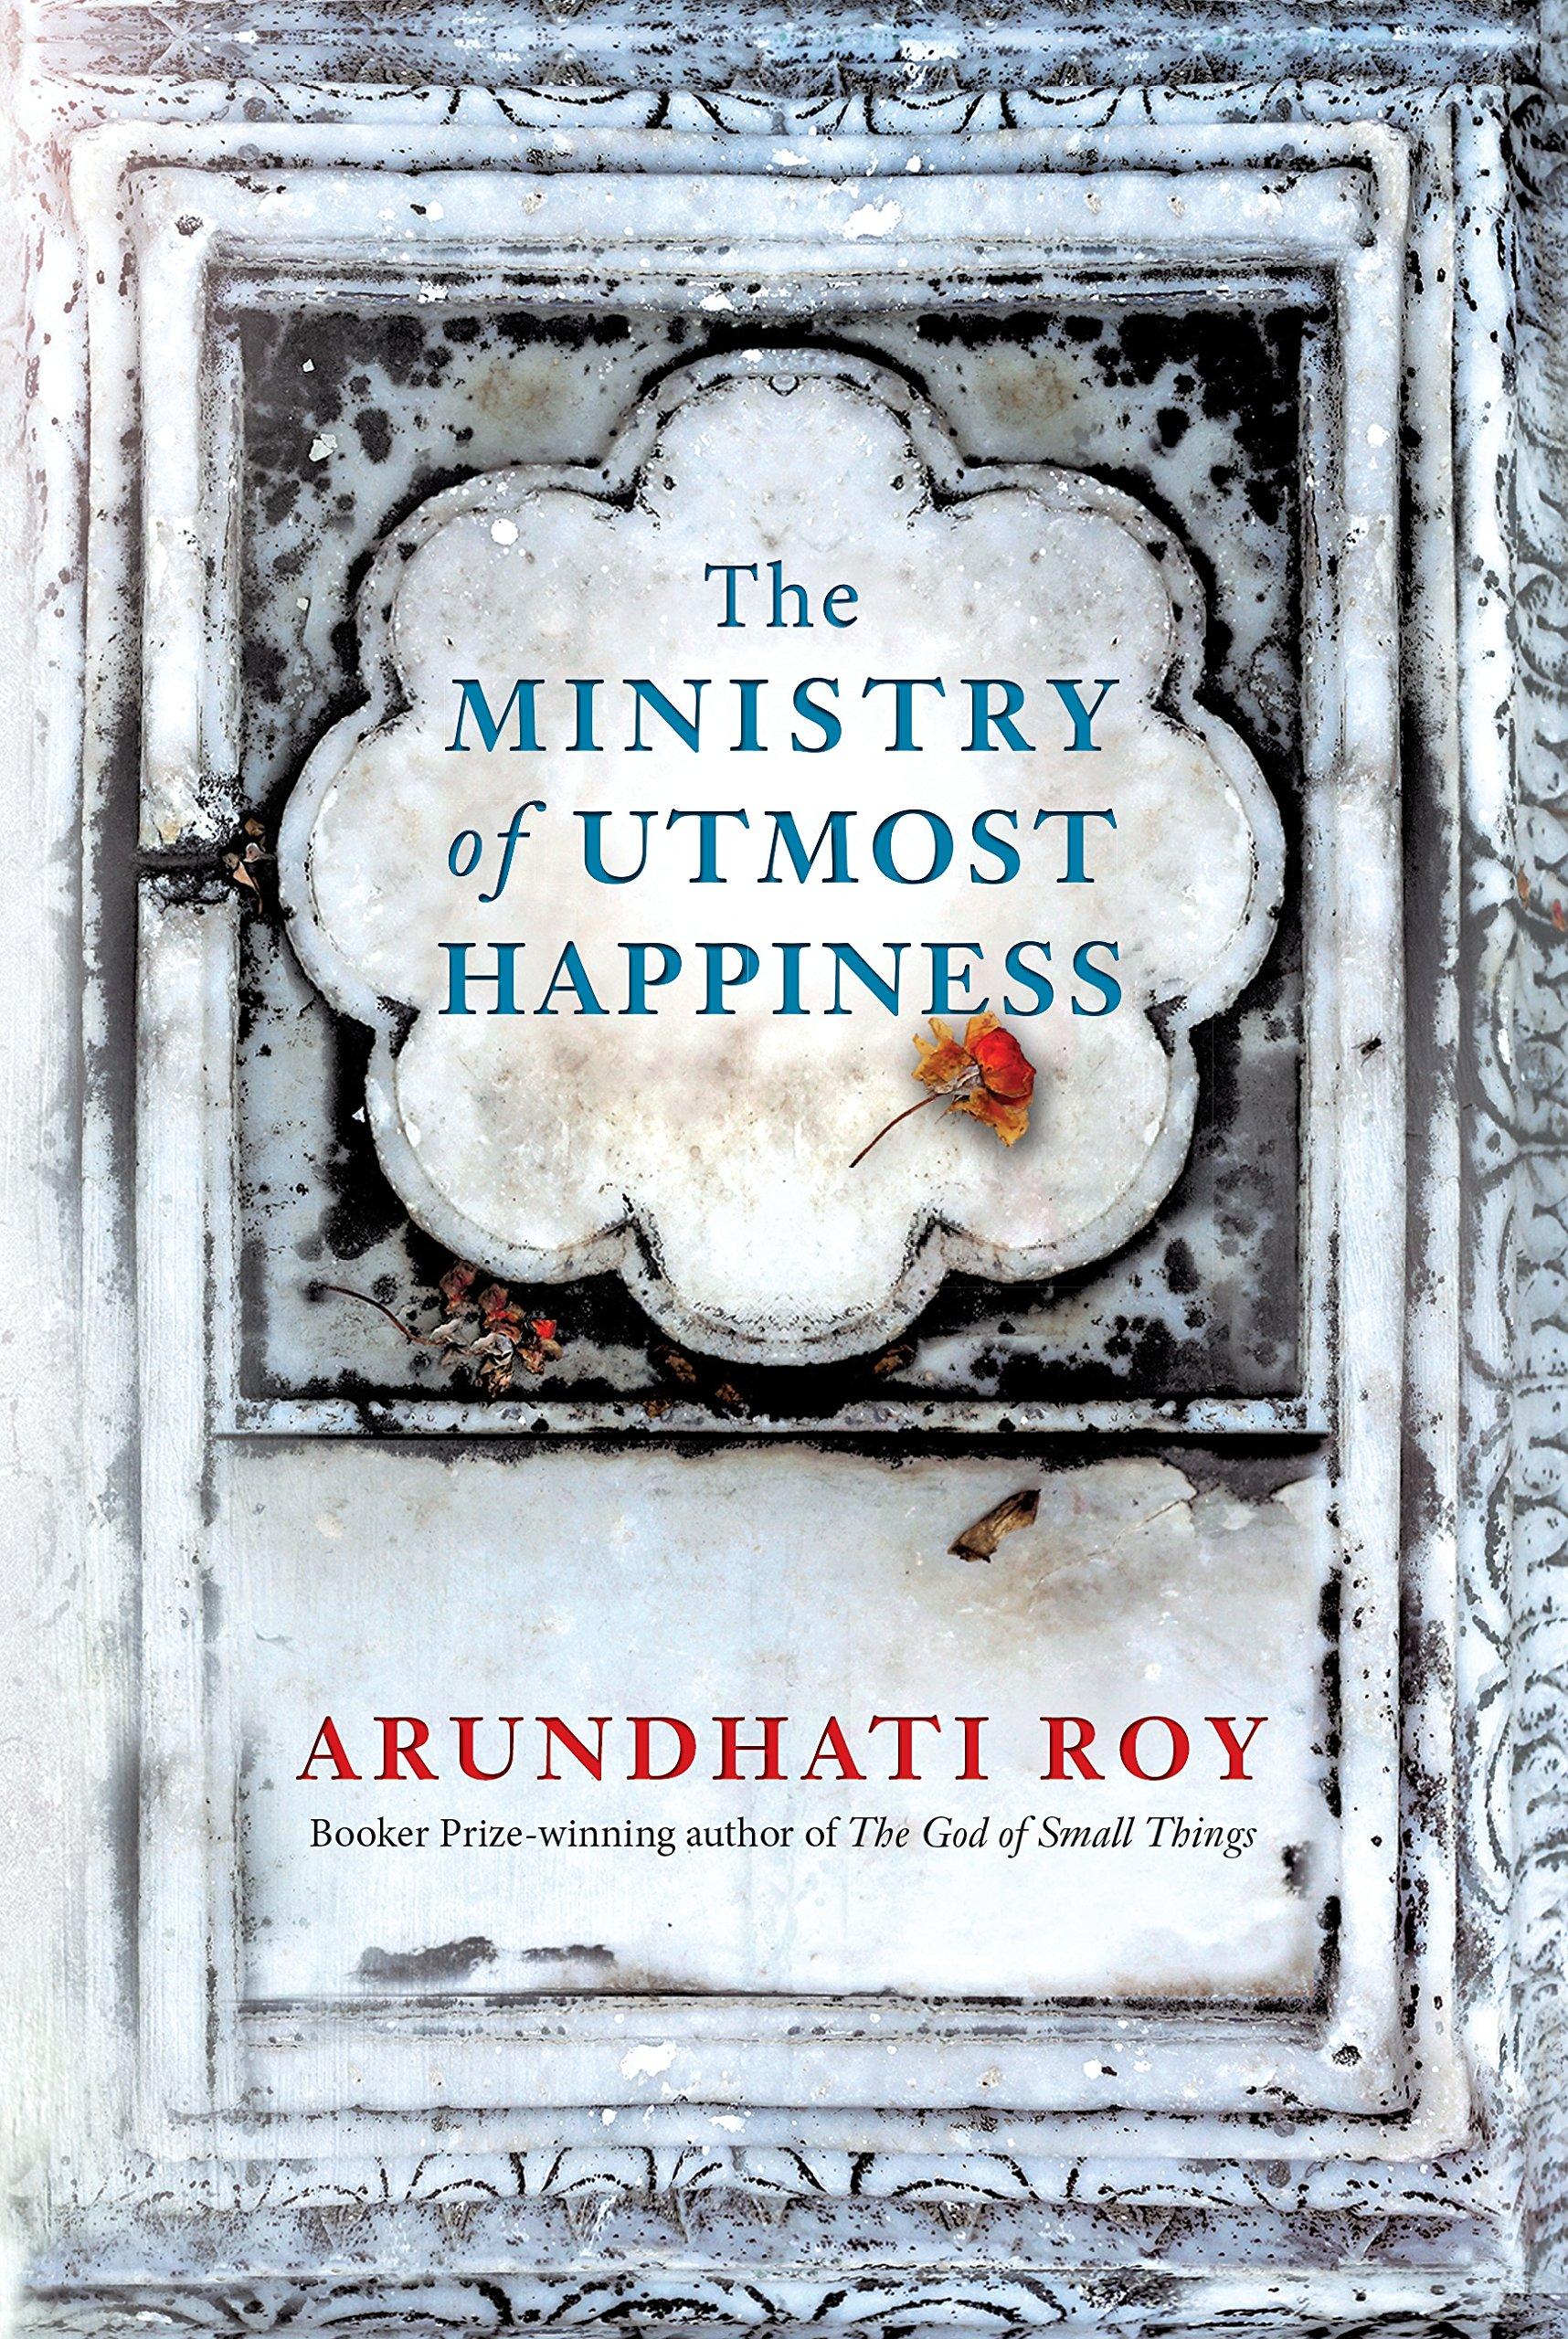 Buy The Ministry Of Utmost Happiness Book Online At Low Prices In India   The Ministry Of Utmost Happiness Reviews & Ratings  Amazon